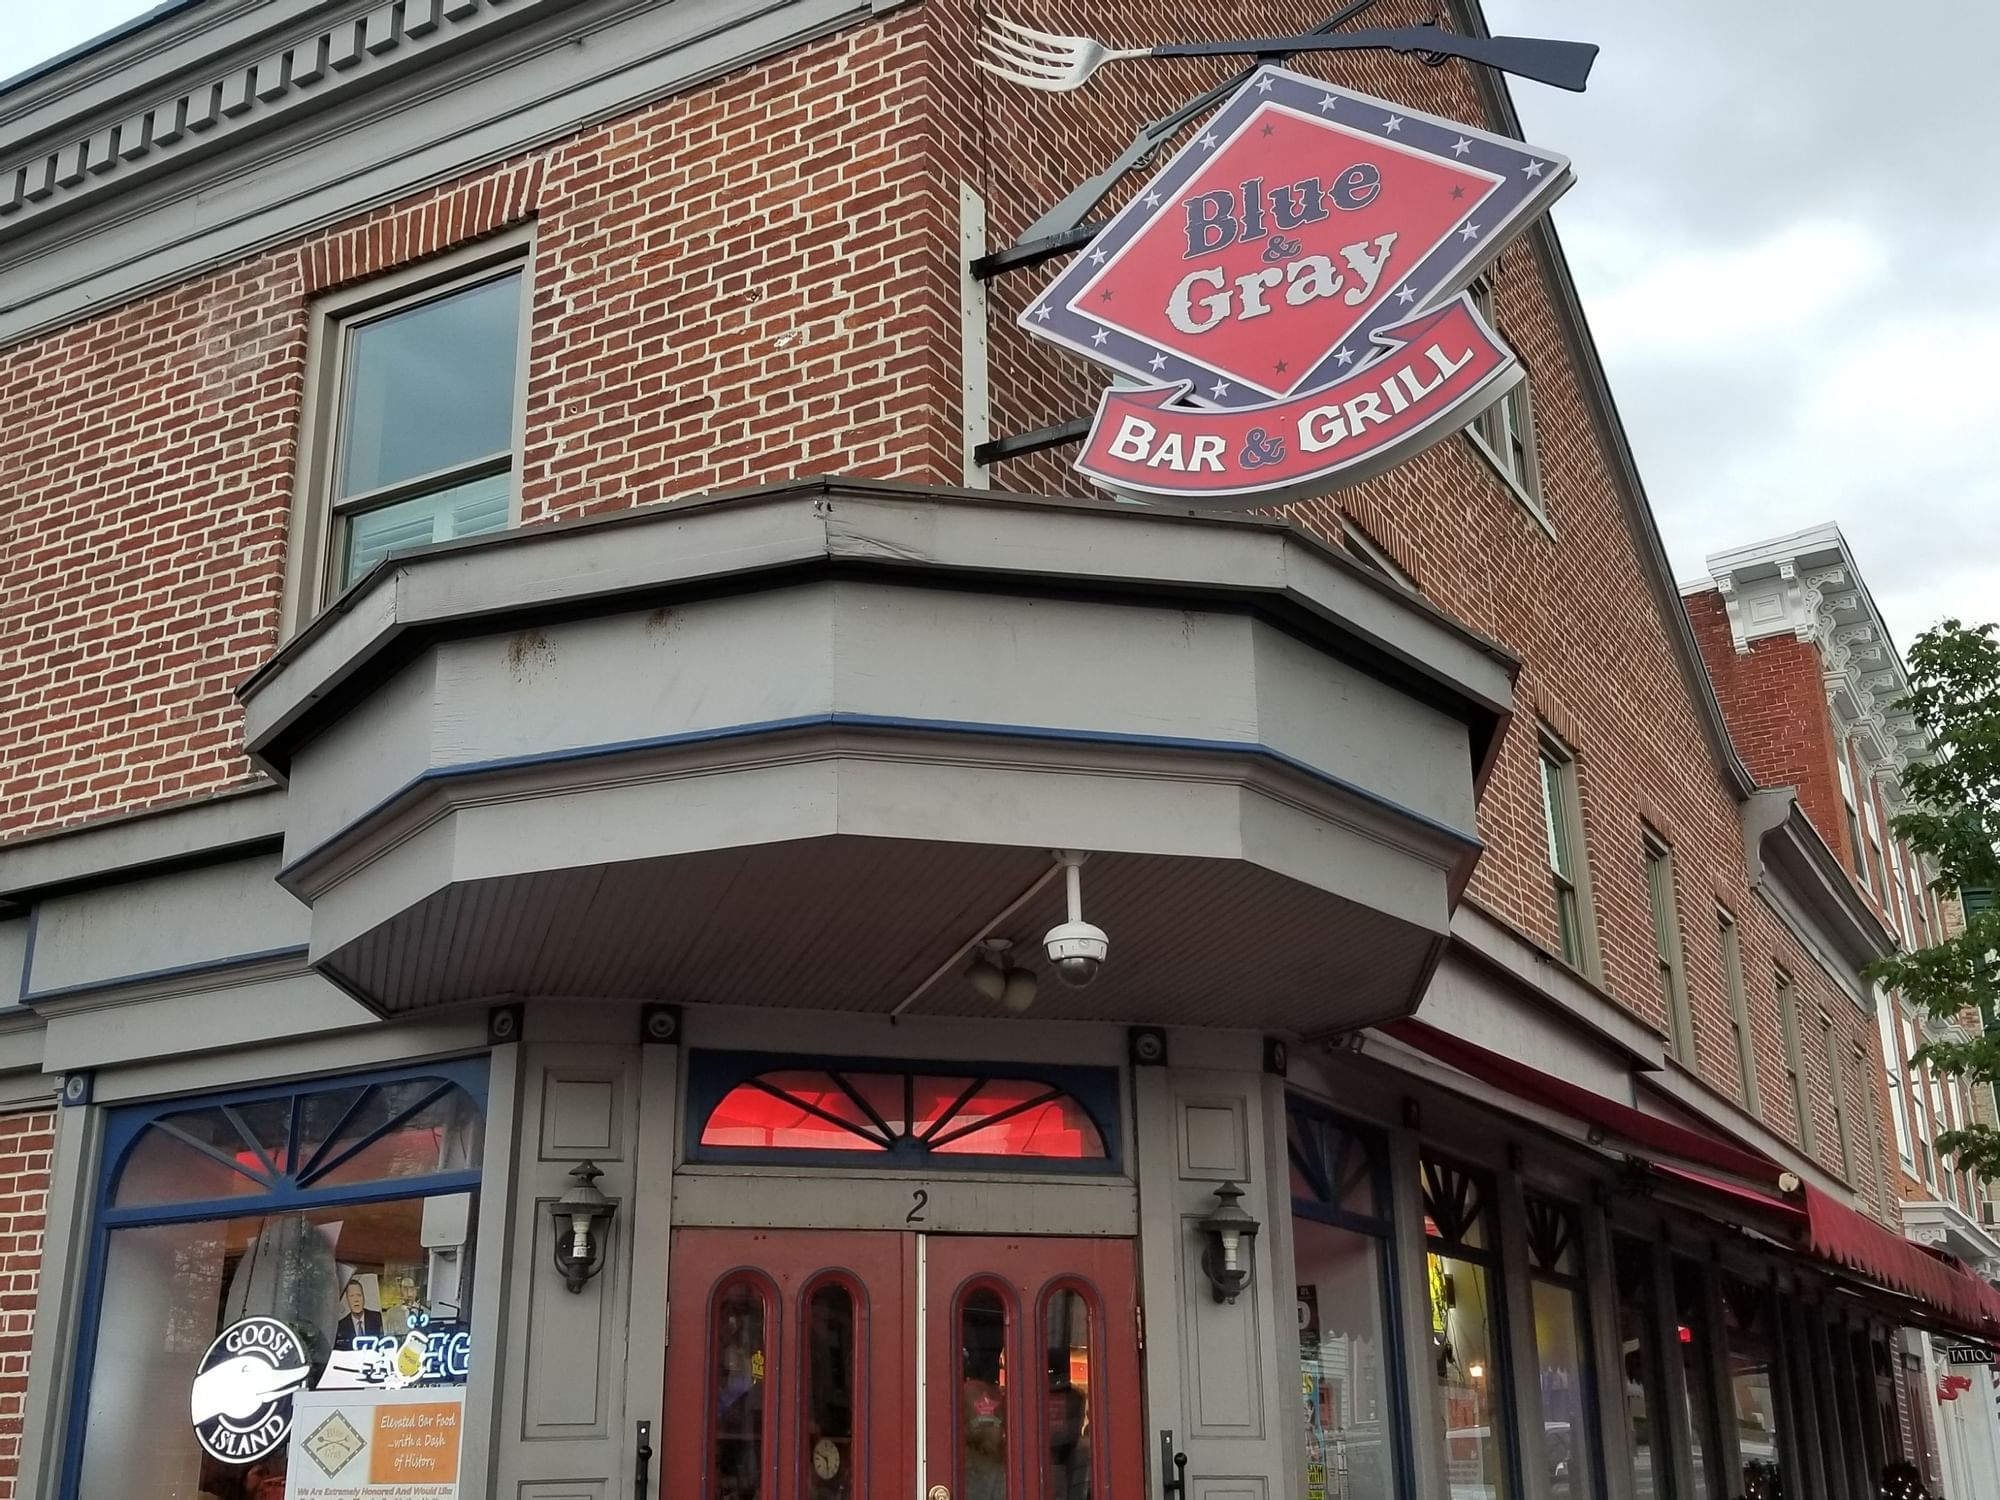 building with sign for blue & gray bar & grill